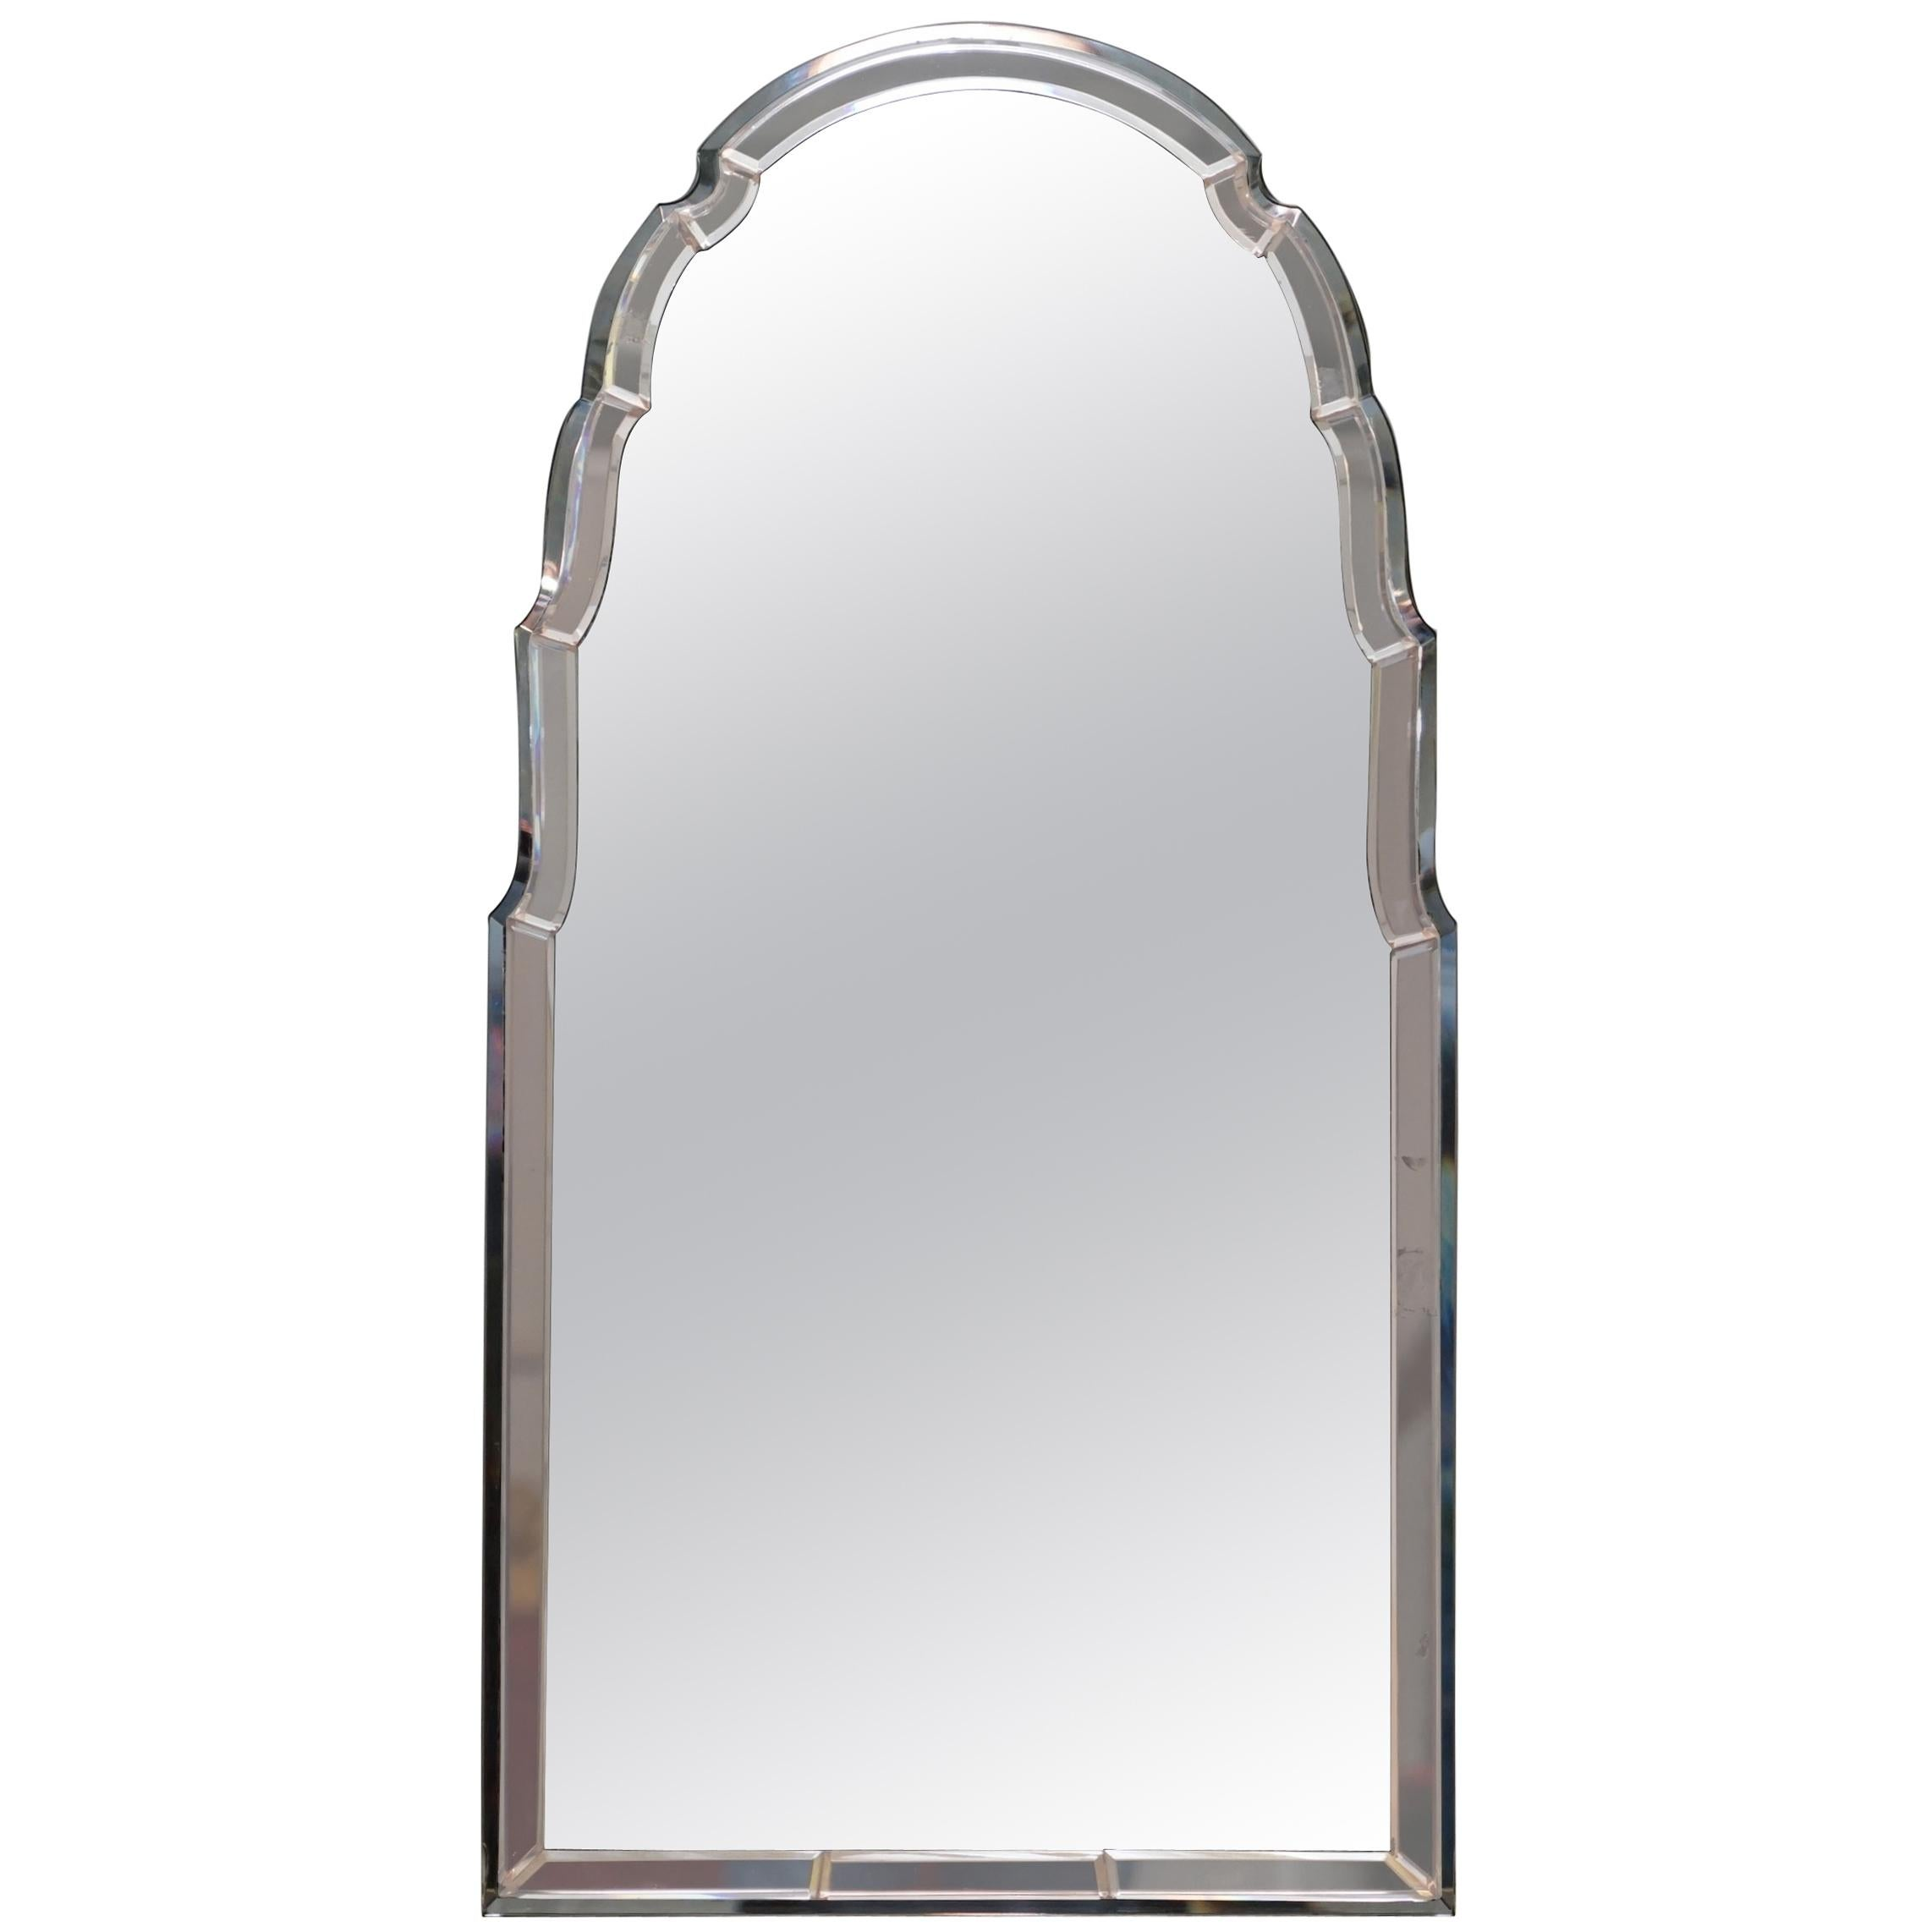 Sublime 1930s Art Deco Peach Glass Beveled Venetian Curved Steeple Top Mirror